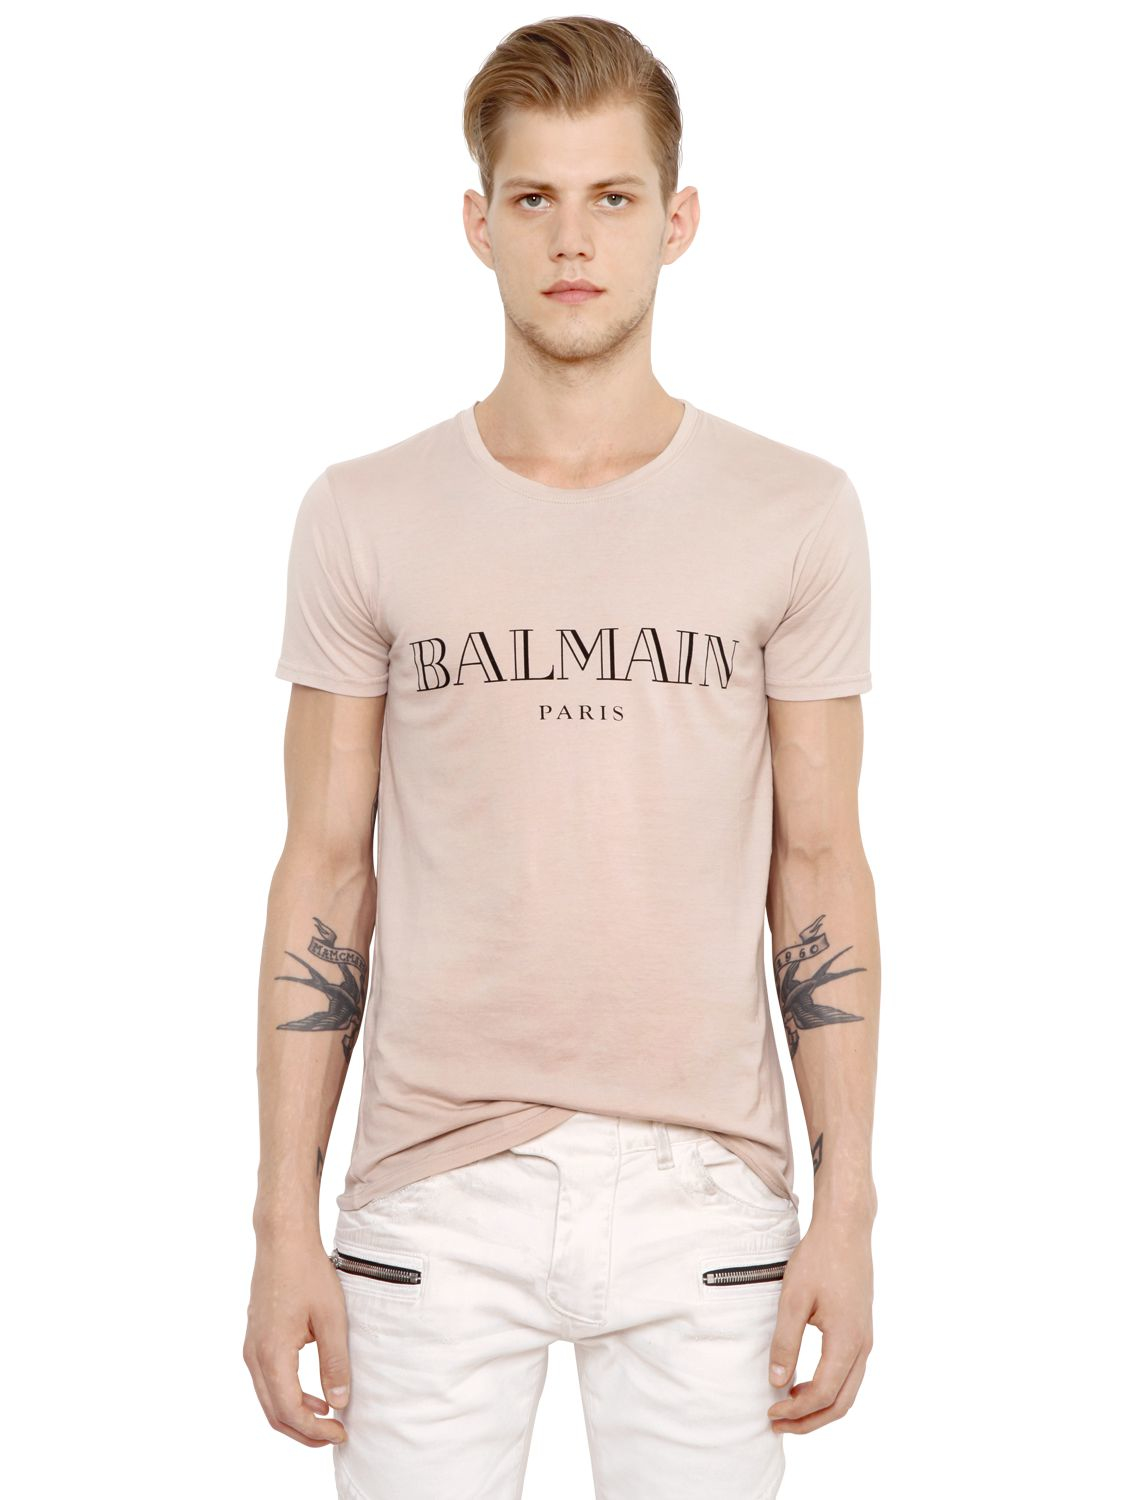 b971eebfcaf7 Lyst - Balmain Logo Printed Cotton Jersey T-shirt in Natural for Men